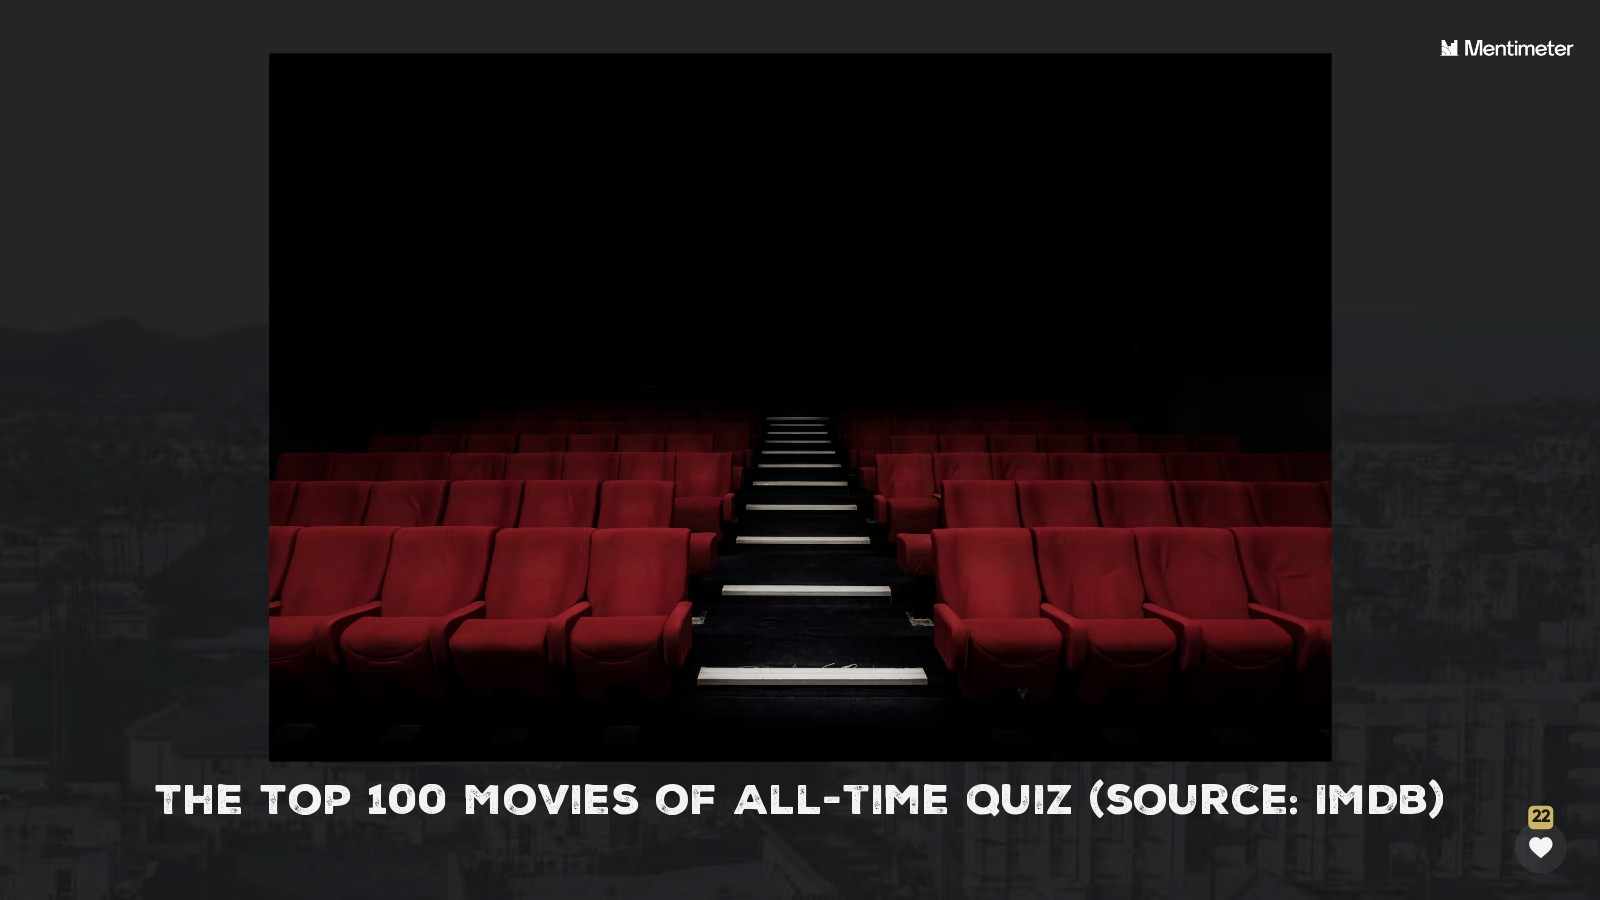 The Top 100 Movies Quiz